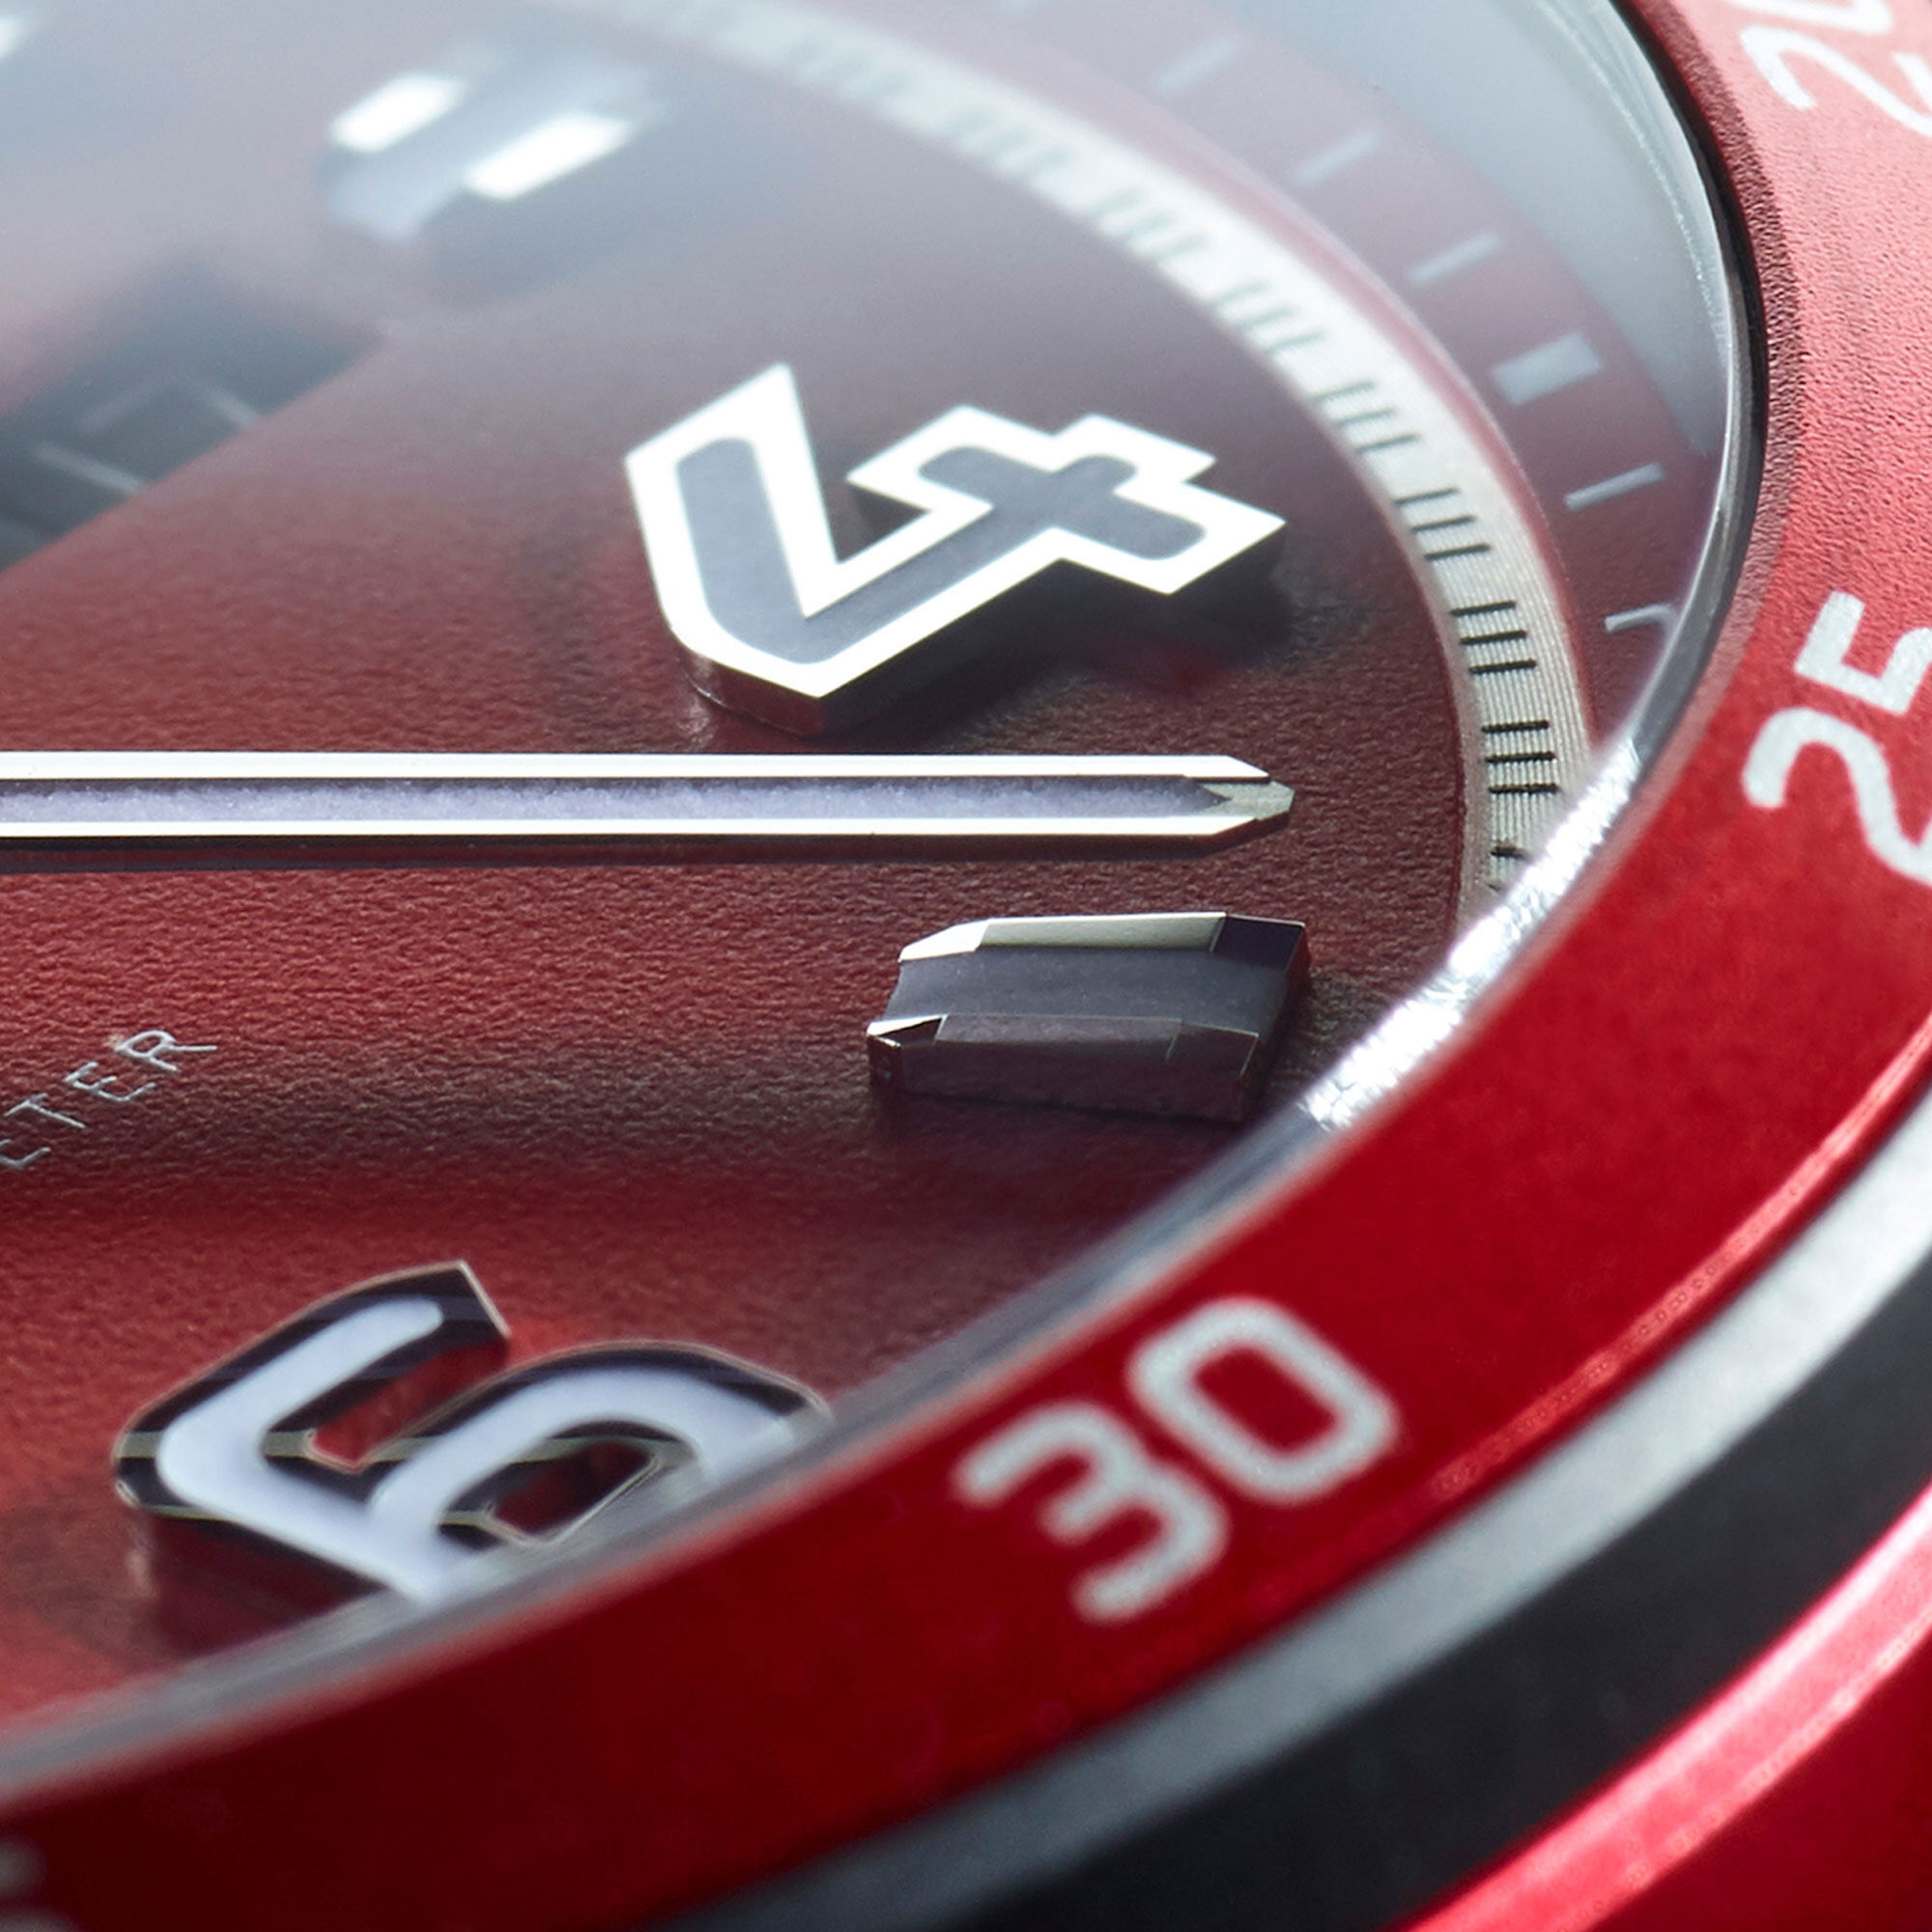 C7 Rosso Corsa COSC Limited Edition